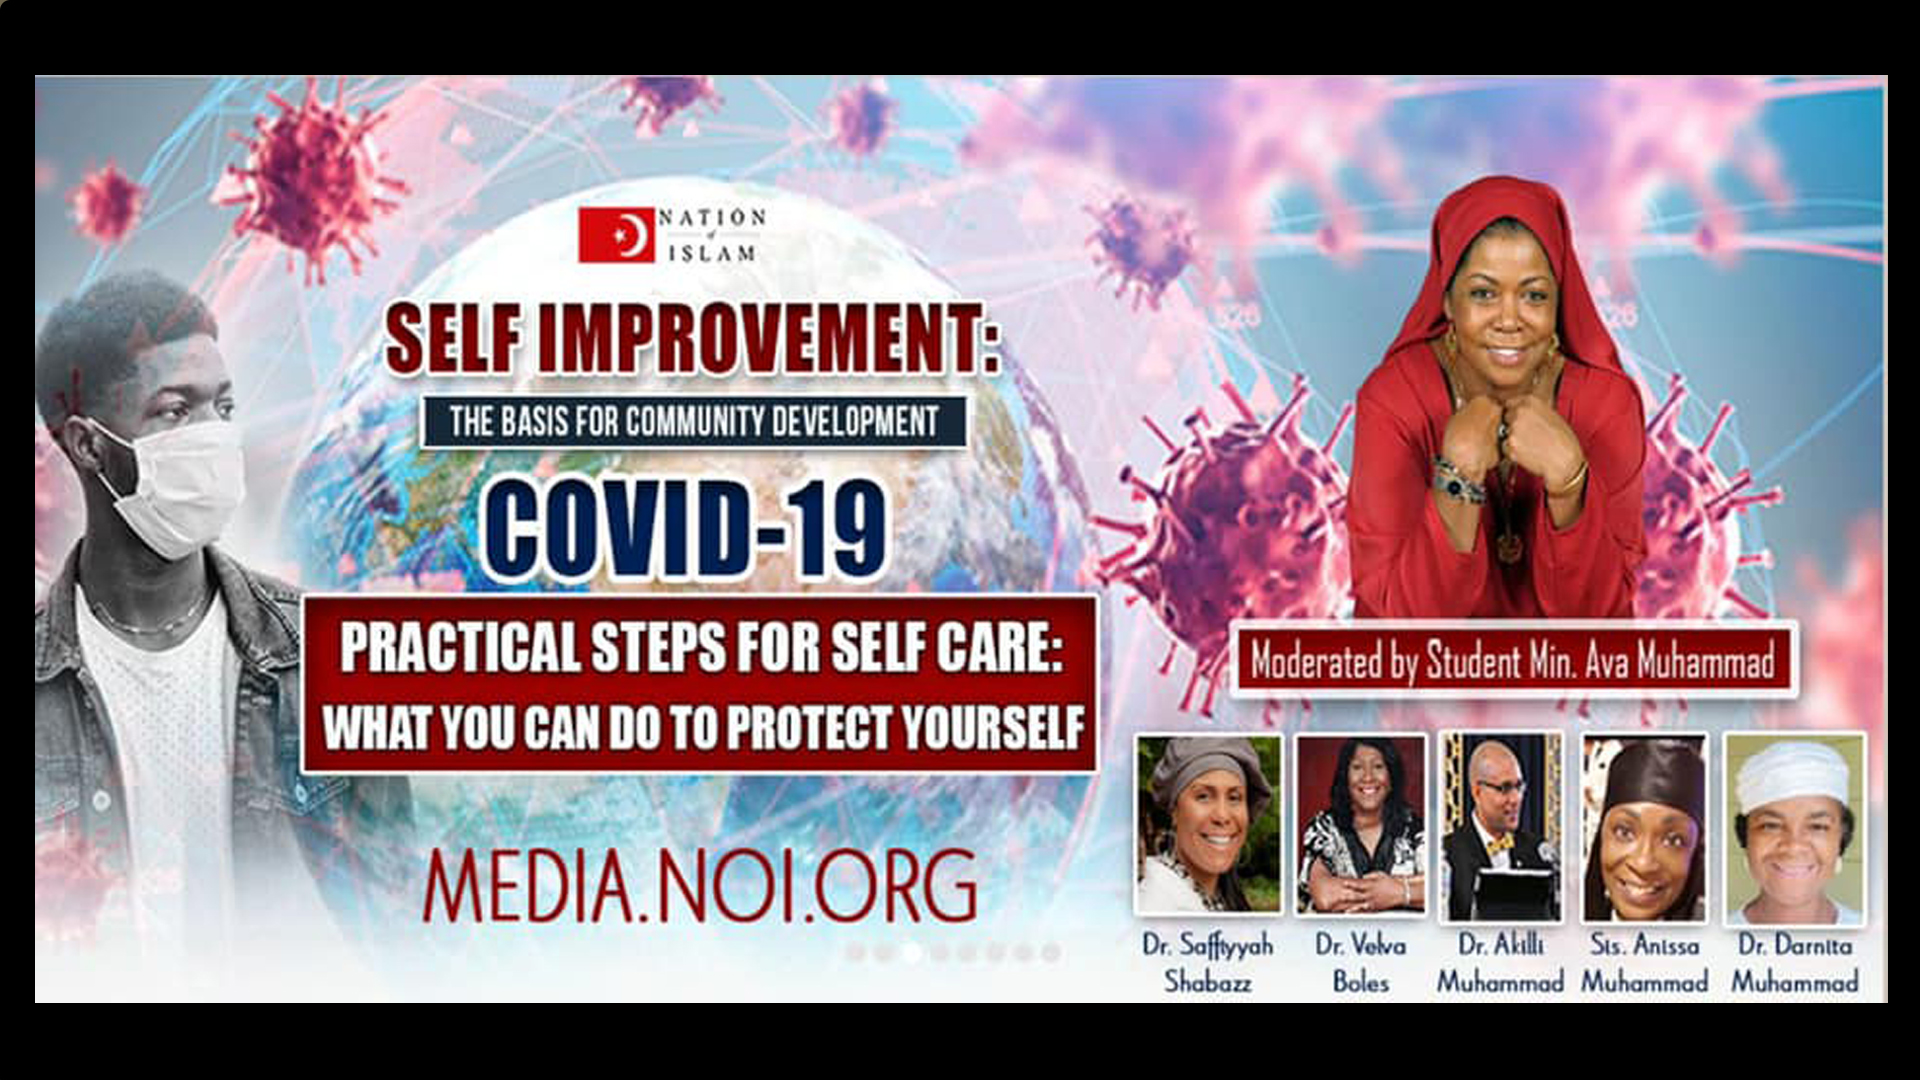 Covid-19: Practical Steps For Self-Care, What You Can Do To Protect Yourself